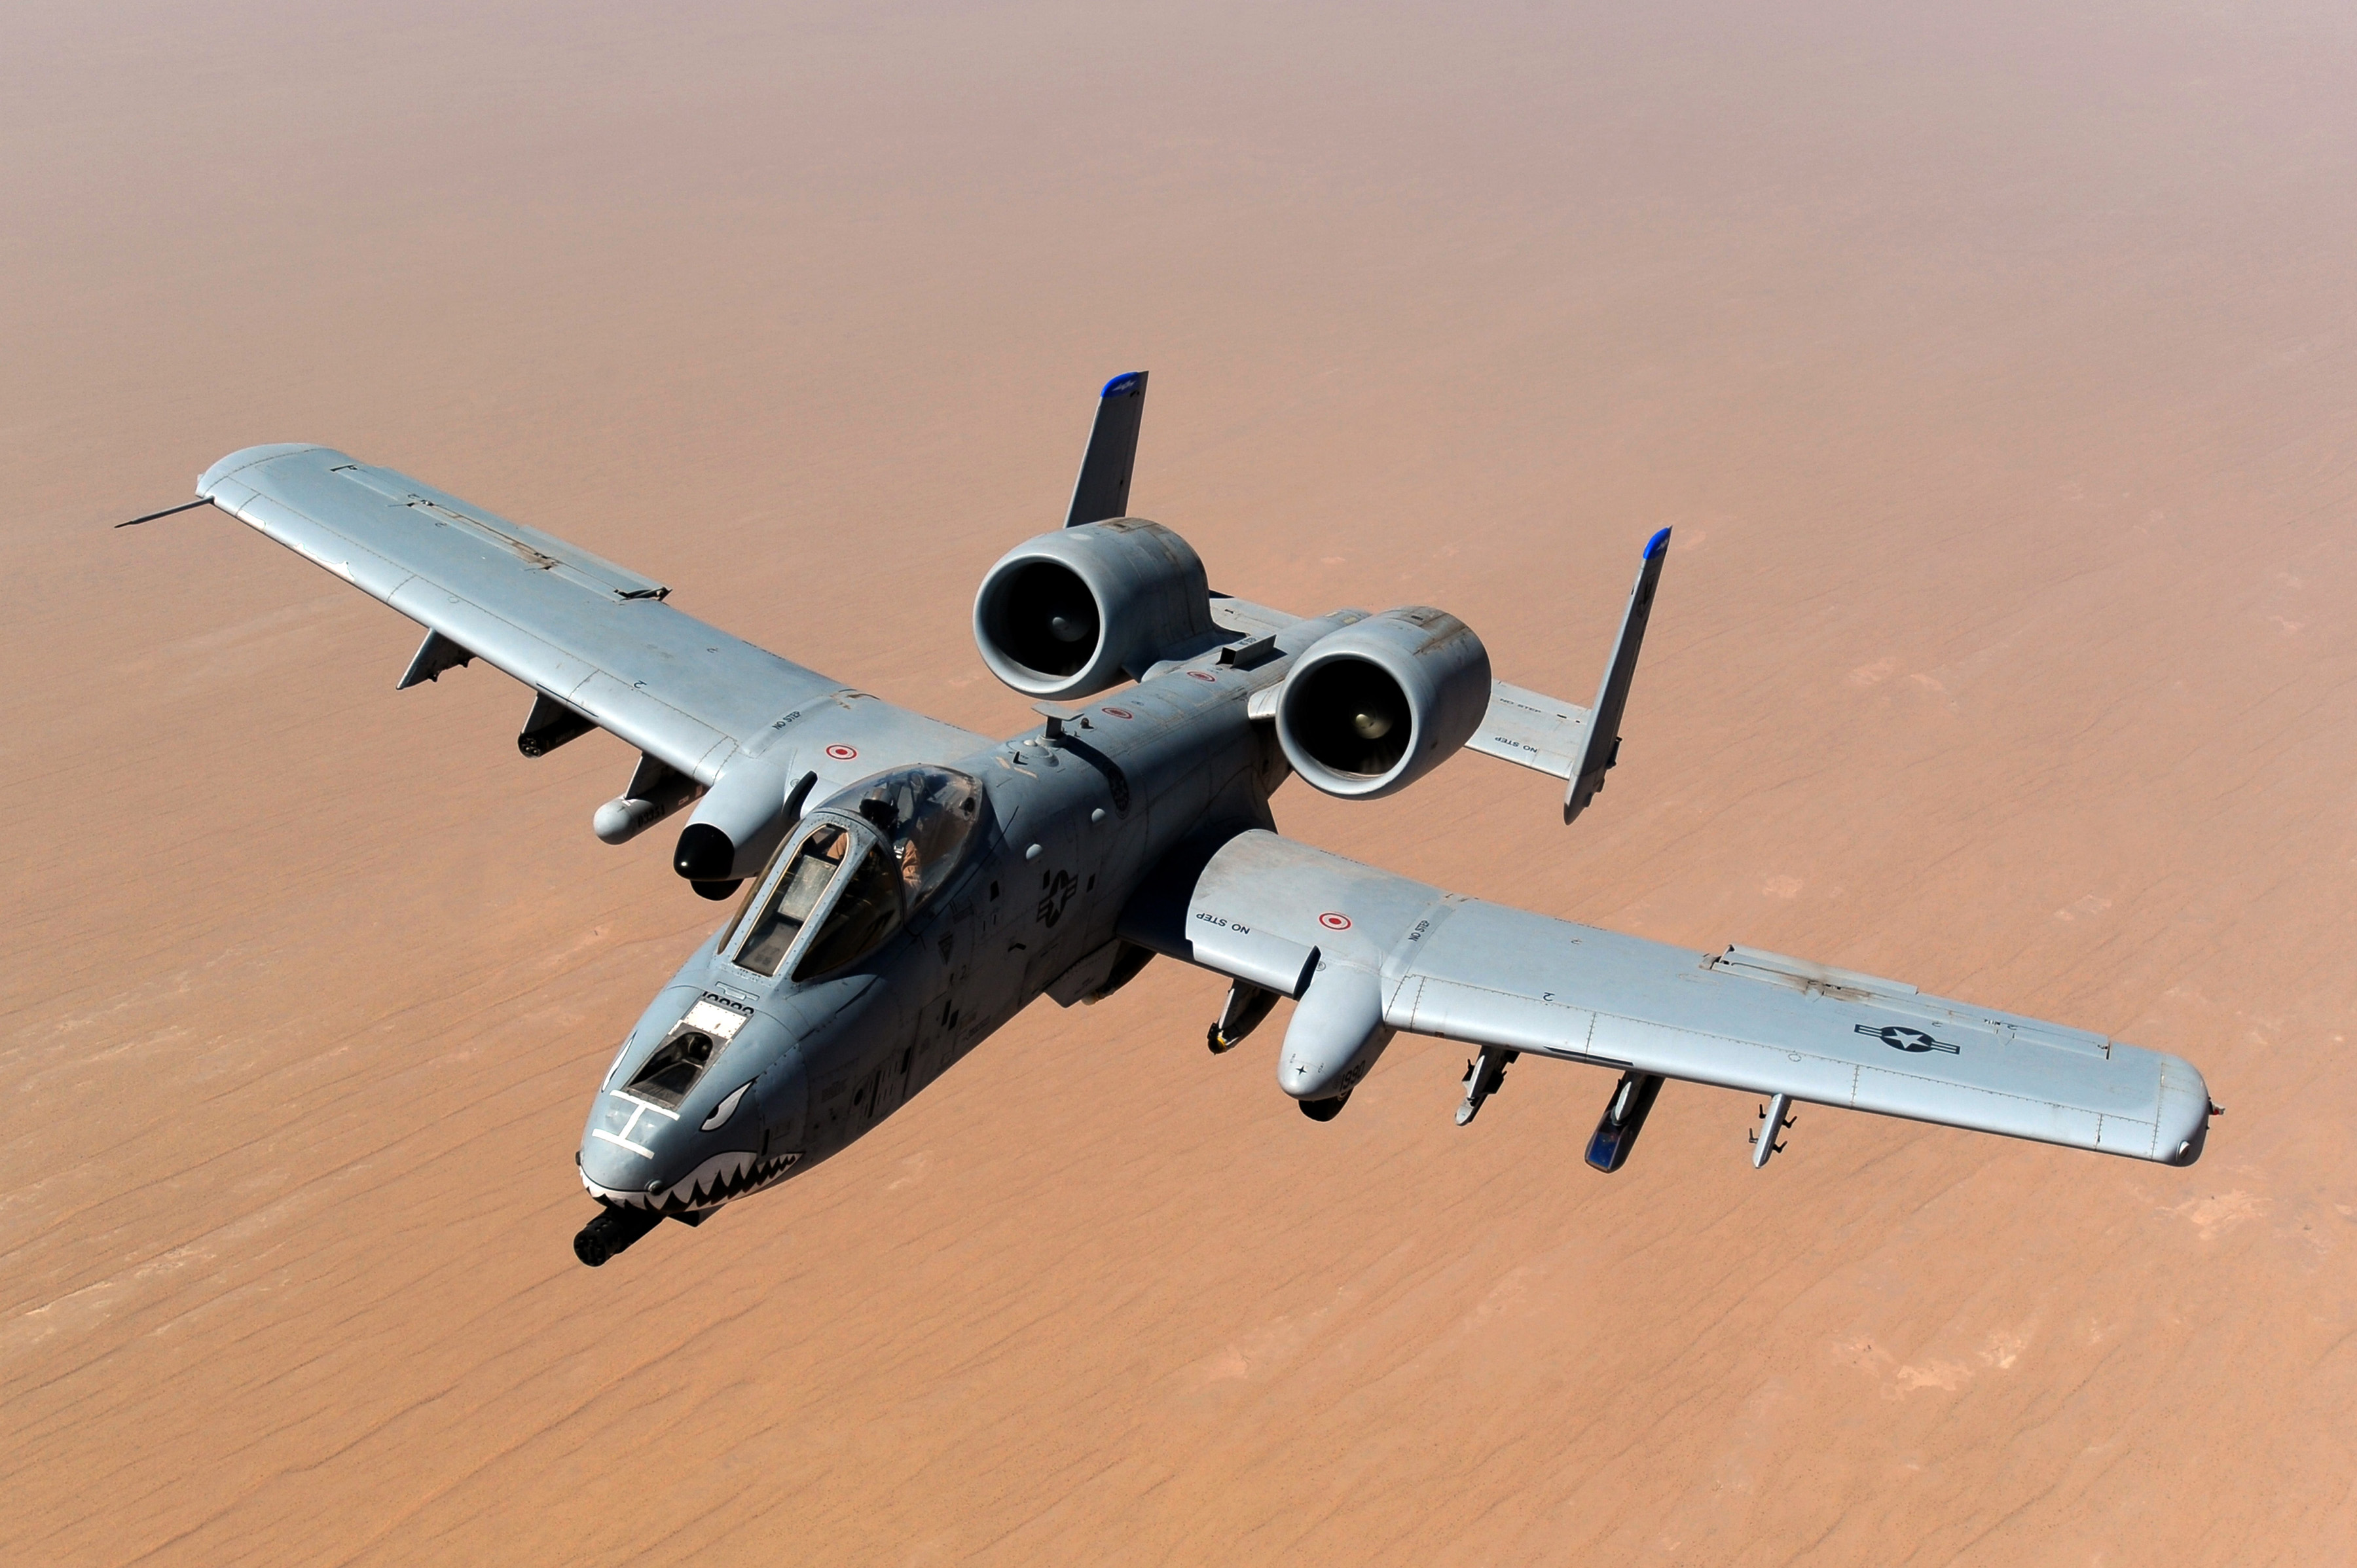 USAF A-10 Thunderbolt II after taking on